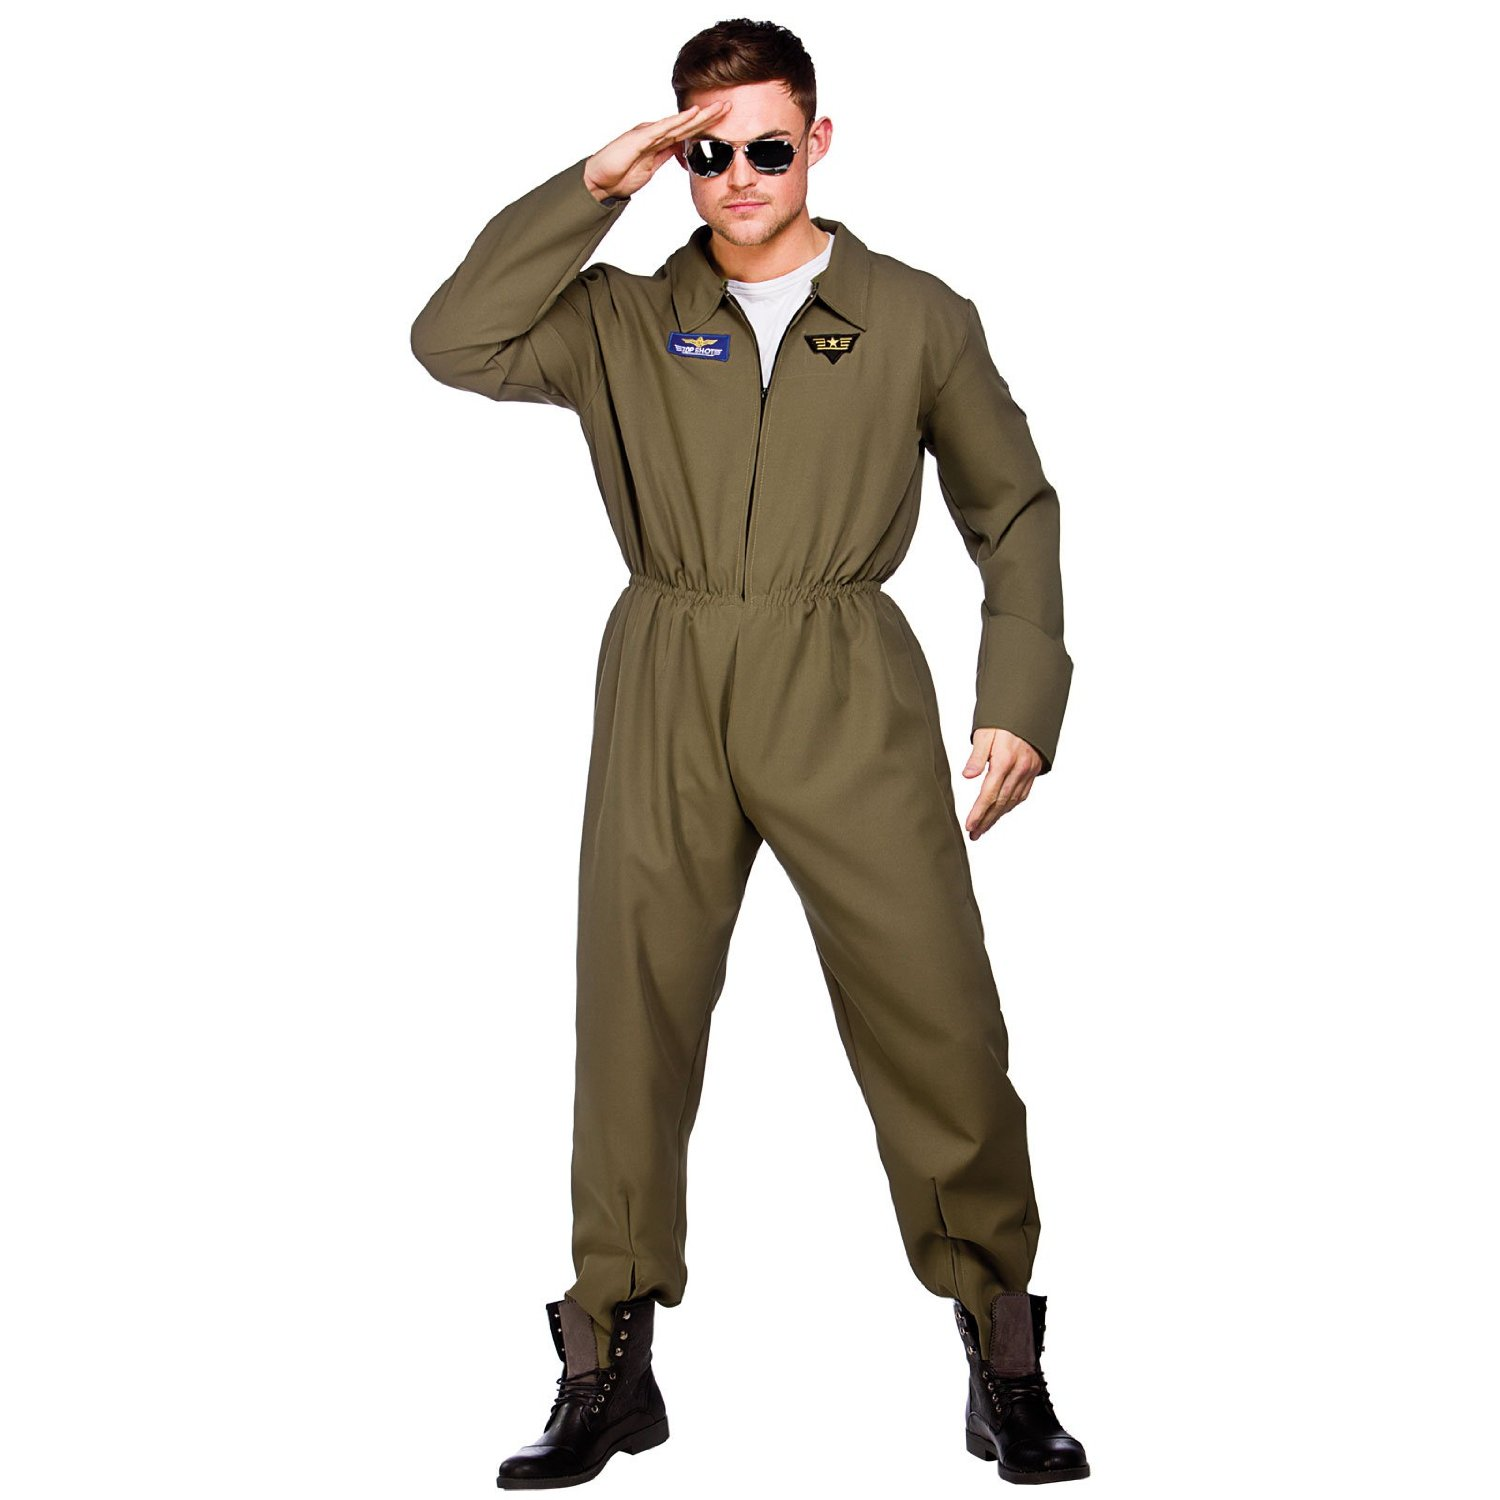 Male Top shot pilot costume em3187